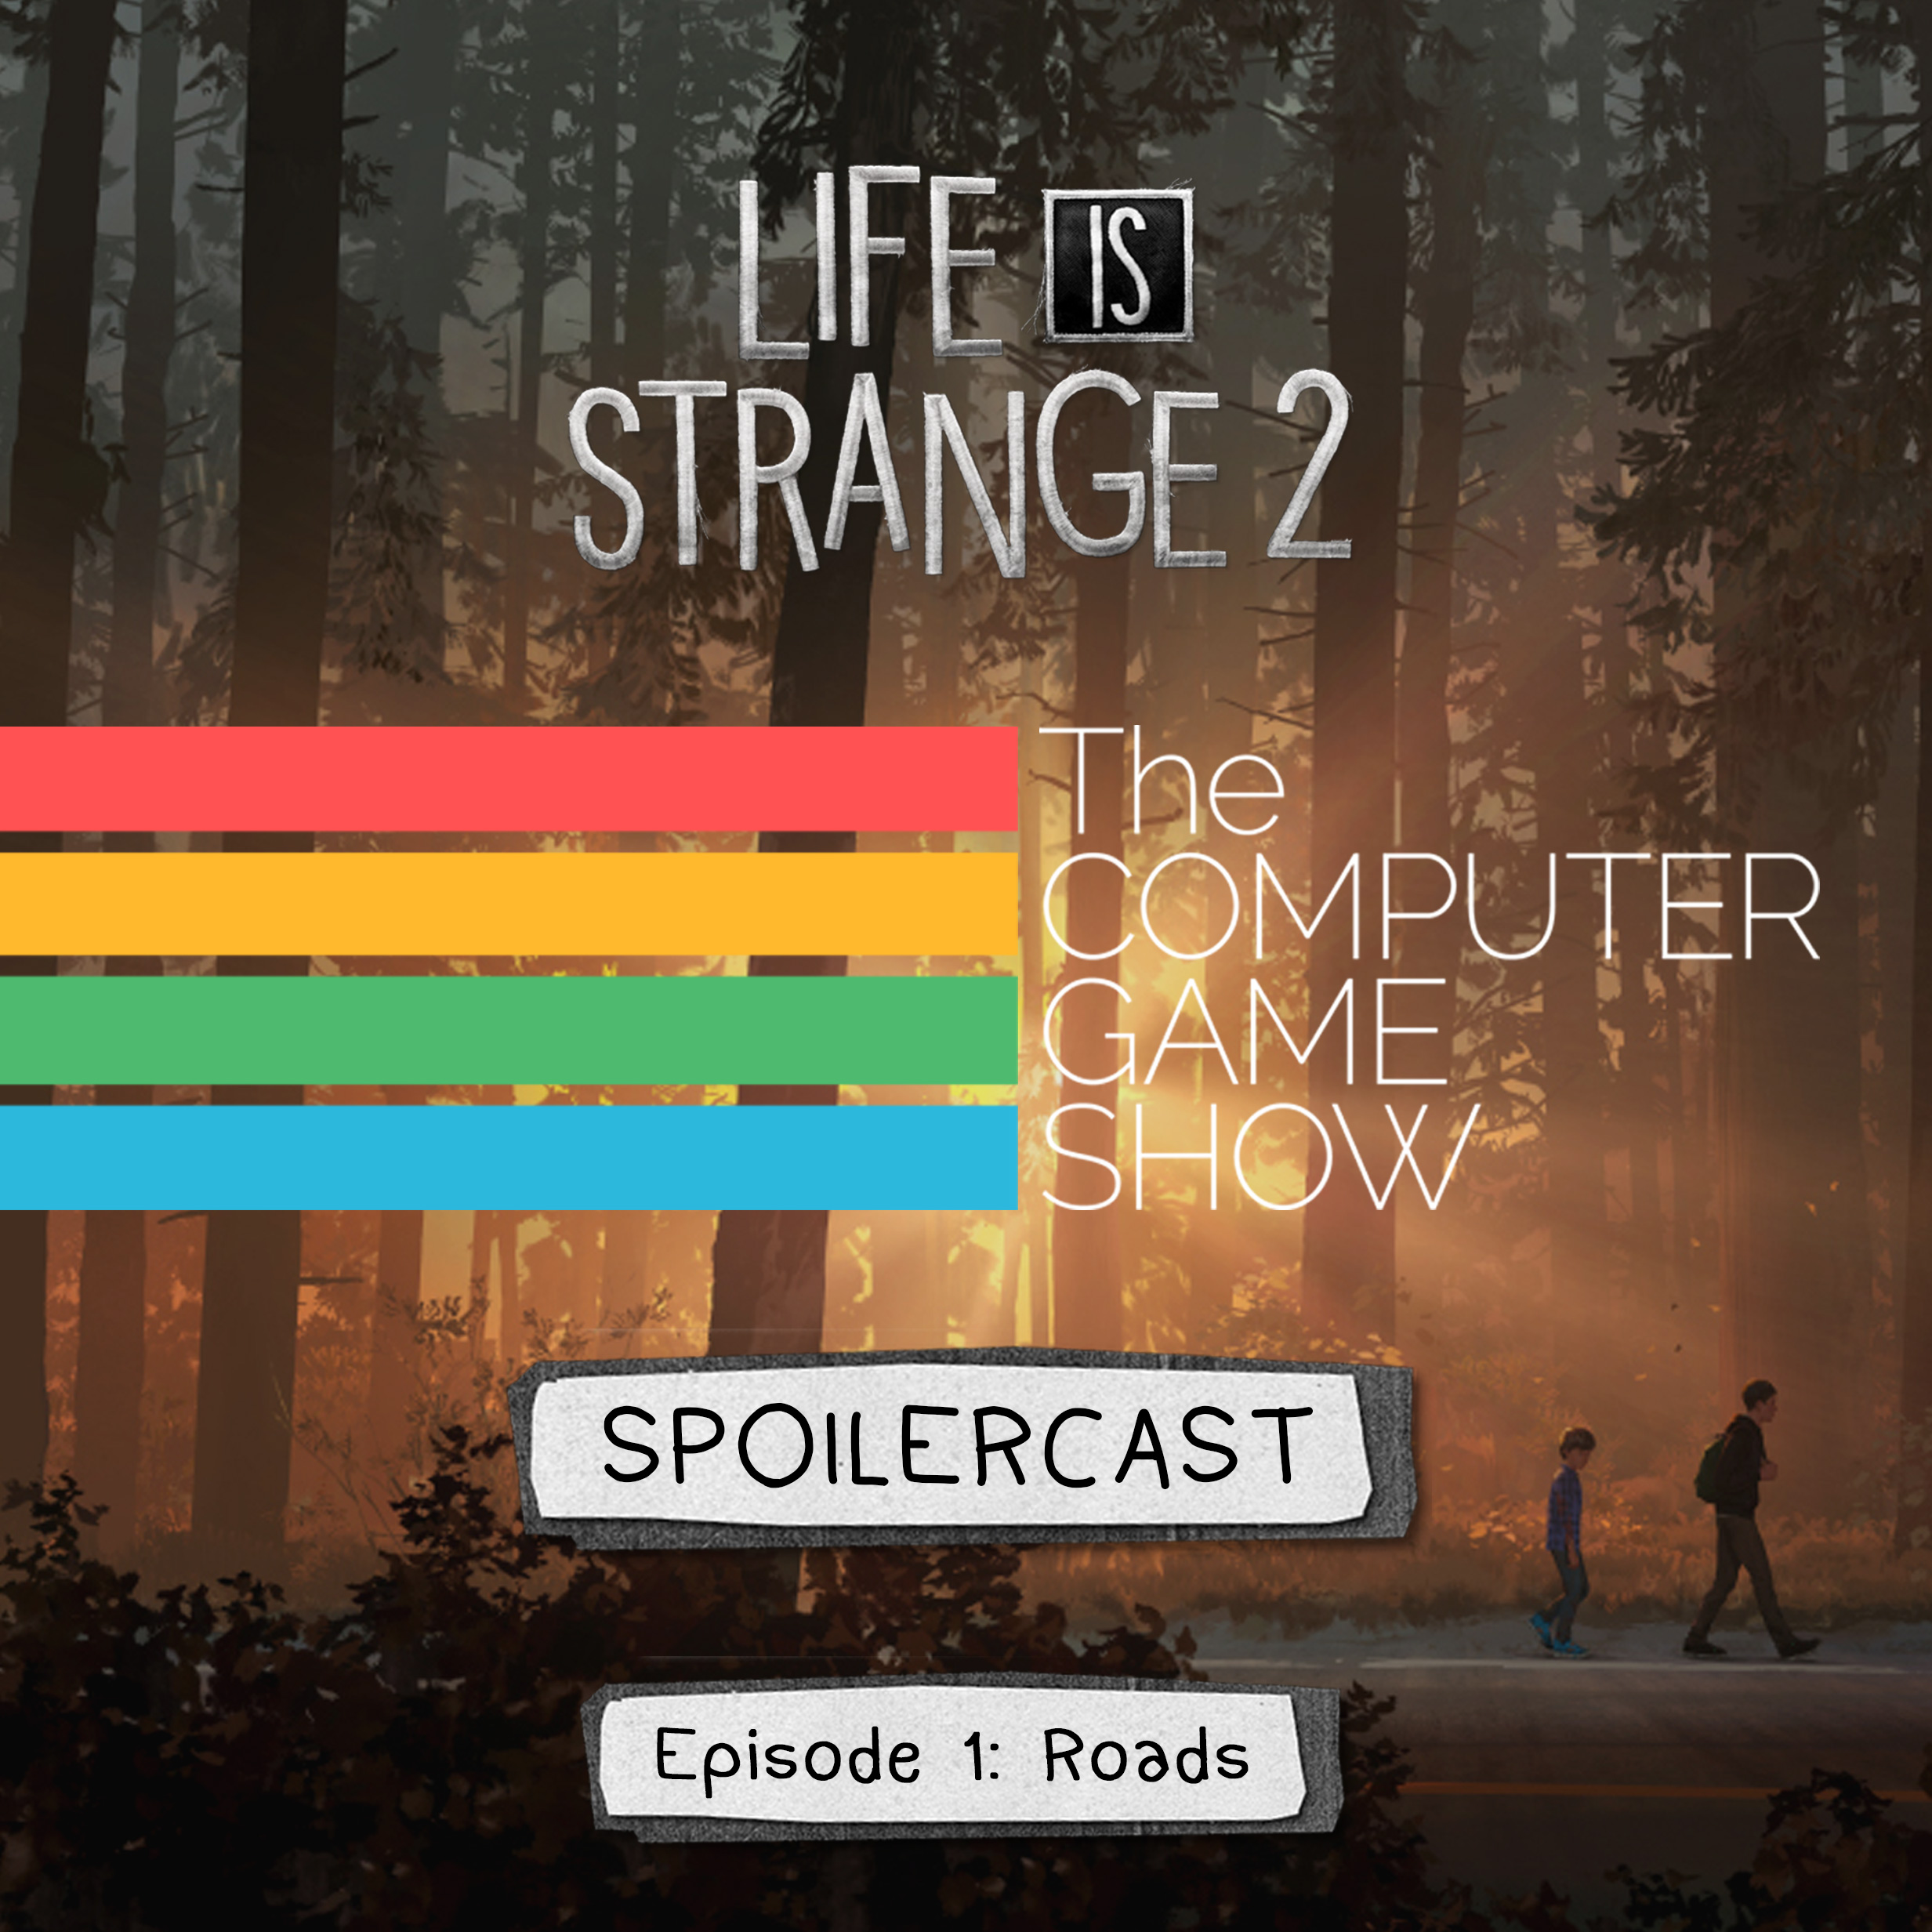 The Computer Game Show 2 Way Switch Feed At Life Is Strange Spoilercast 1 Roads